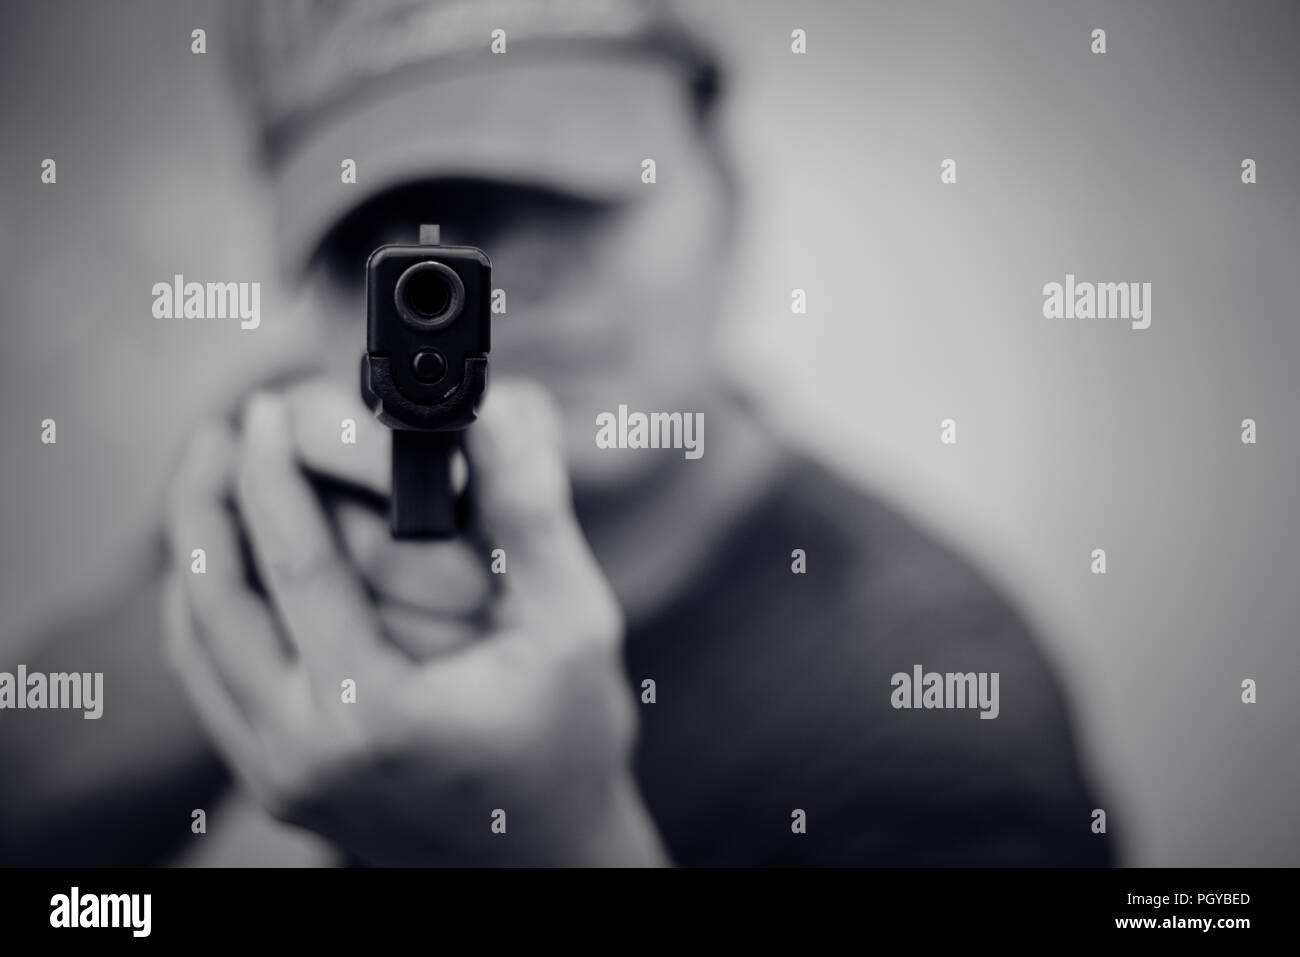 Man aiming gun and ready to shoot on front view. People and dangerous weapons concept. Criminal and security theme. Police and robber theme. Outlaw an - Stock Image